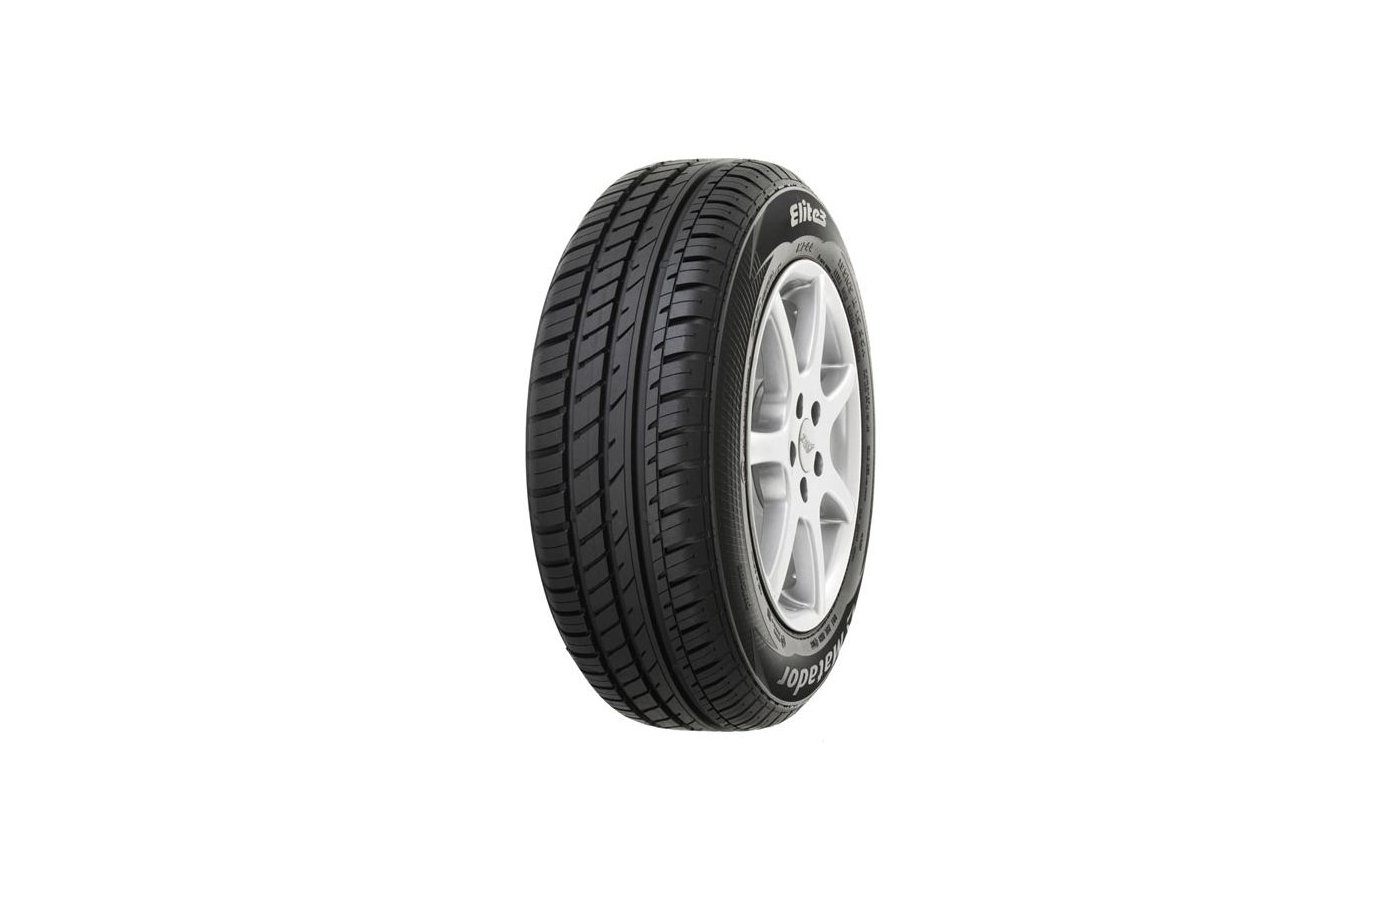 Шина Matador MP 44 Elite 3 225/55 R16 TL 95V